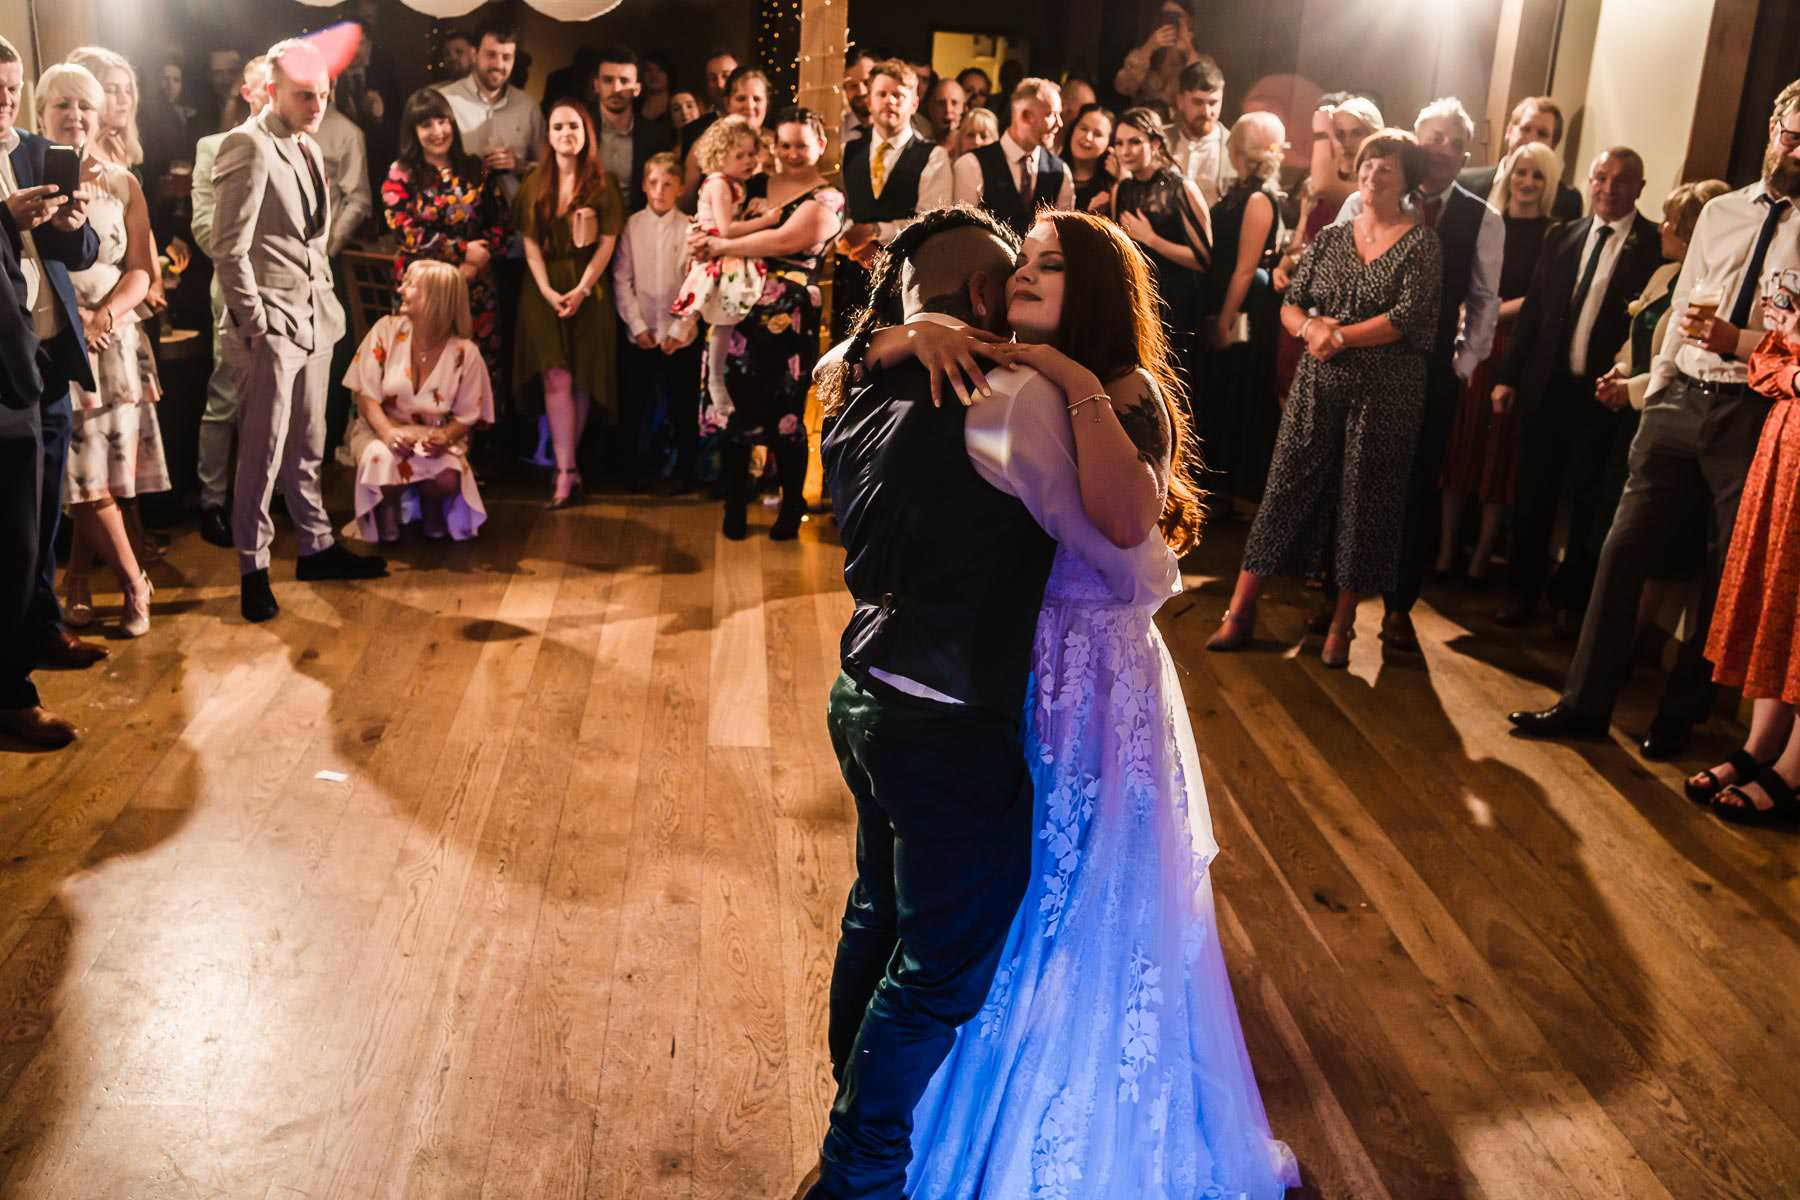 Viking Groom and Alternative Bride first dance